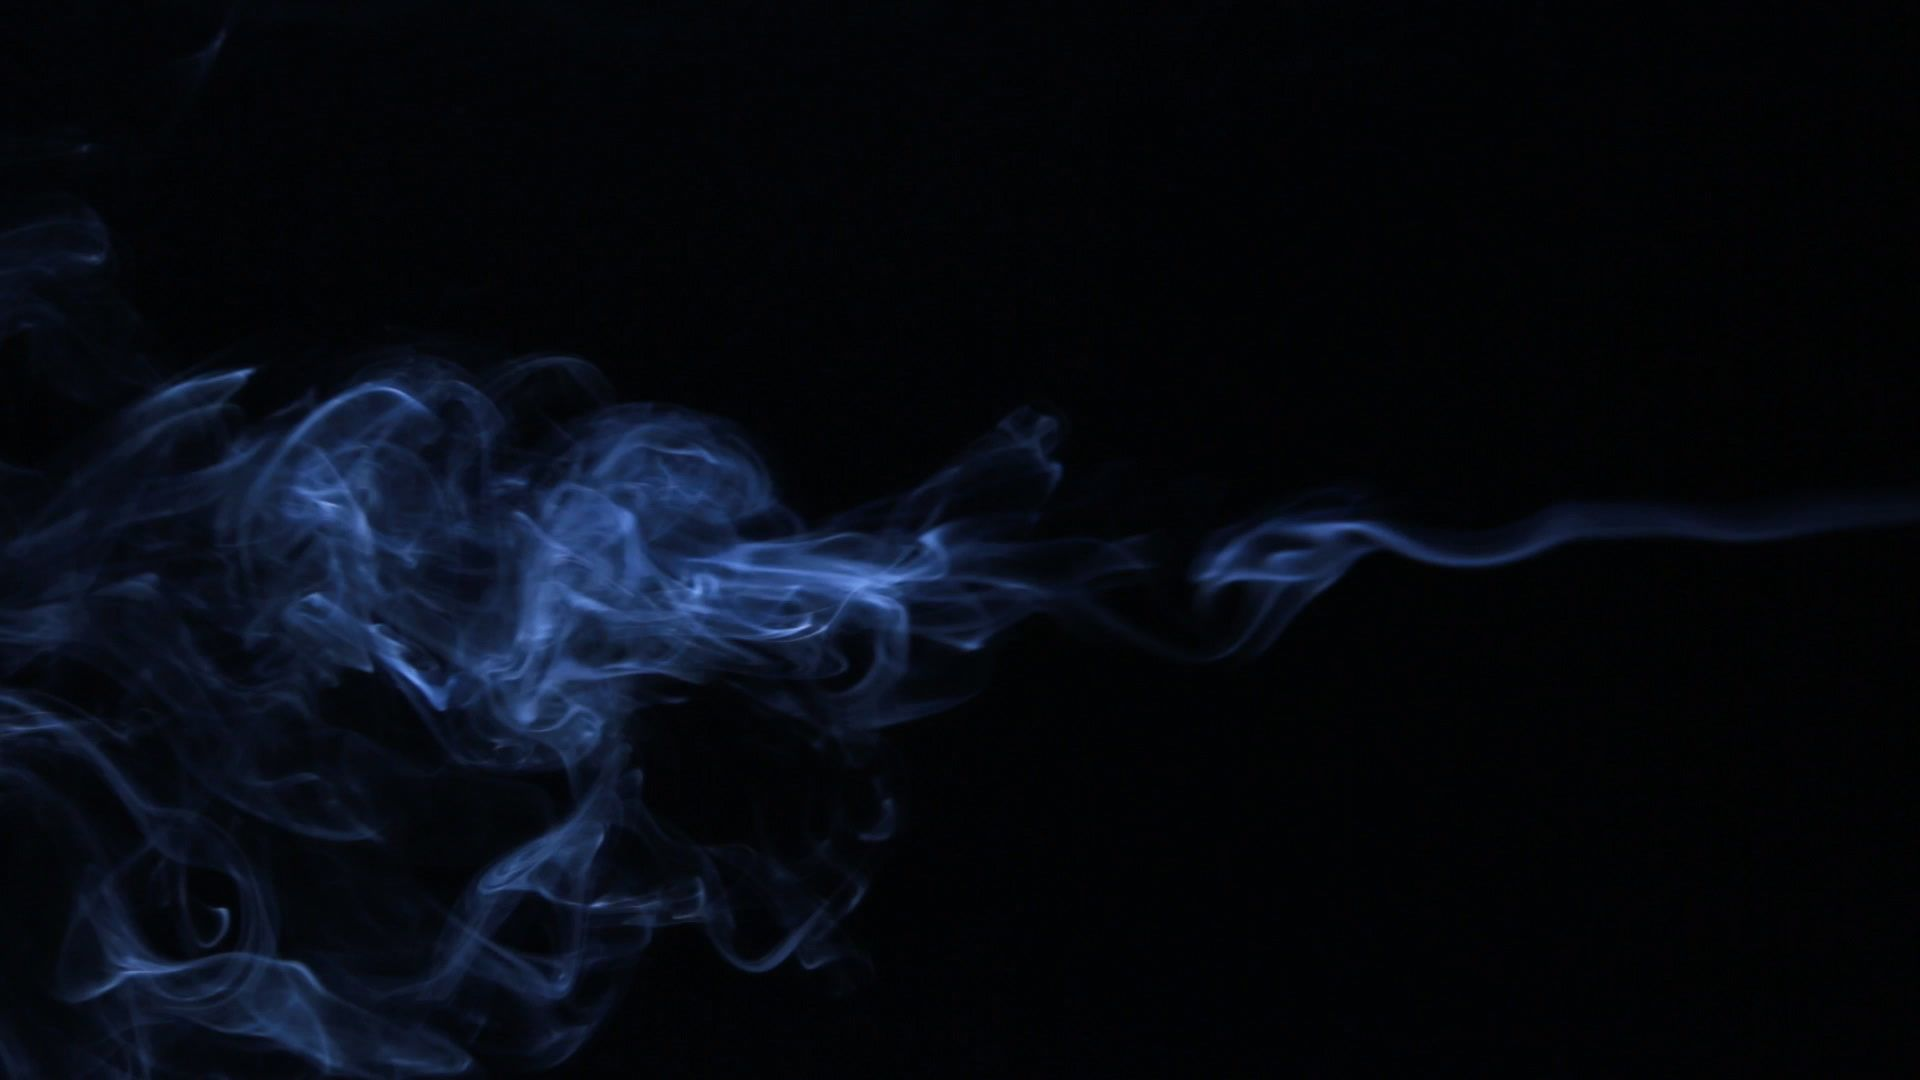 Stream Of Smoke Passes Into The Clubs Swirls Of Smoke Abstract